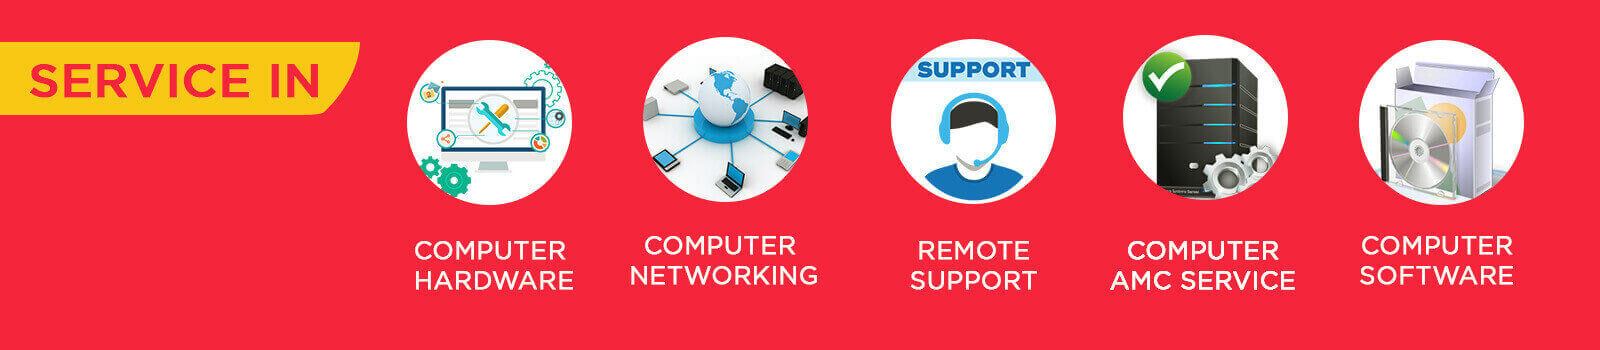 harsh enterprises, IT Support and Service List, Computer Service